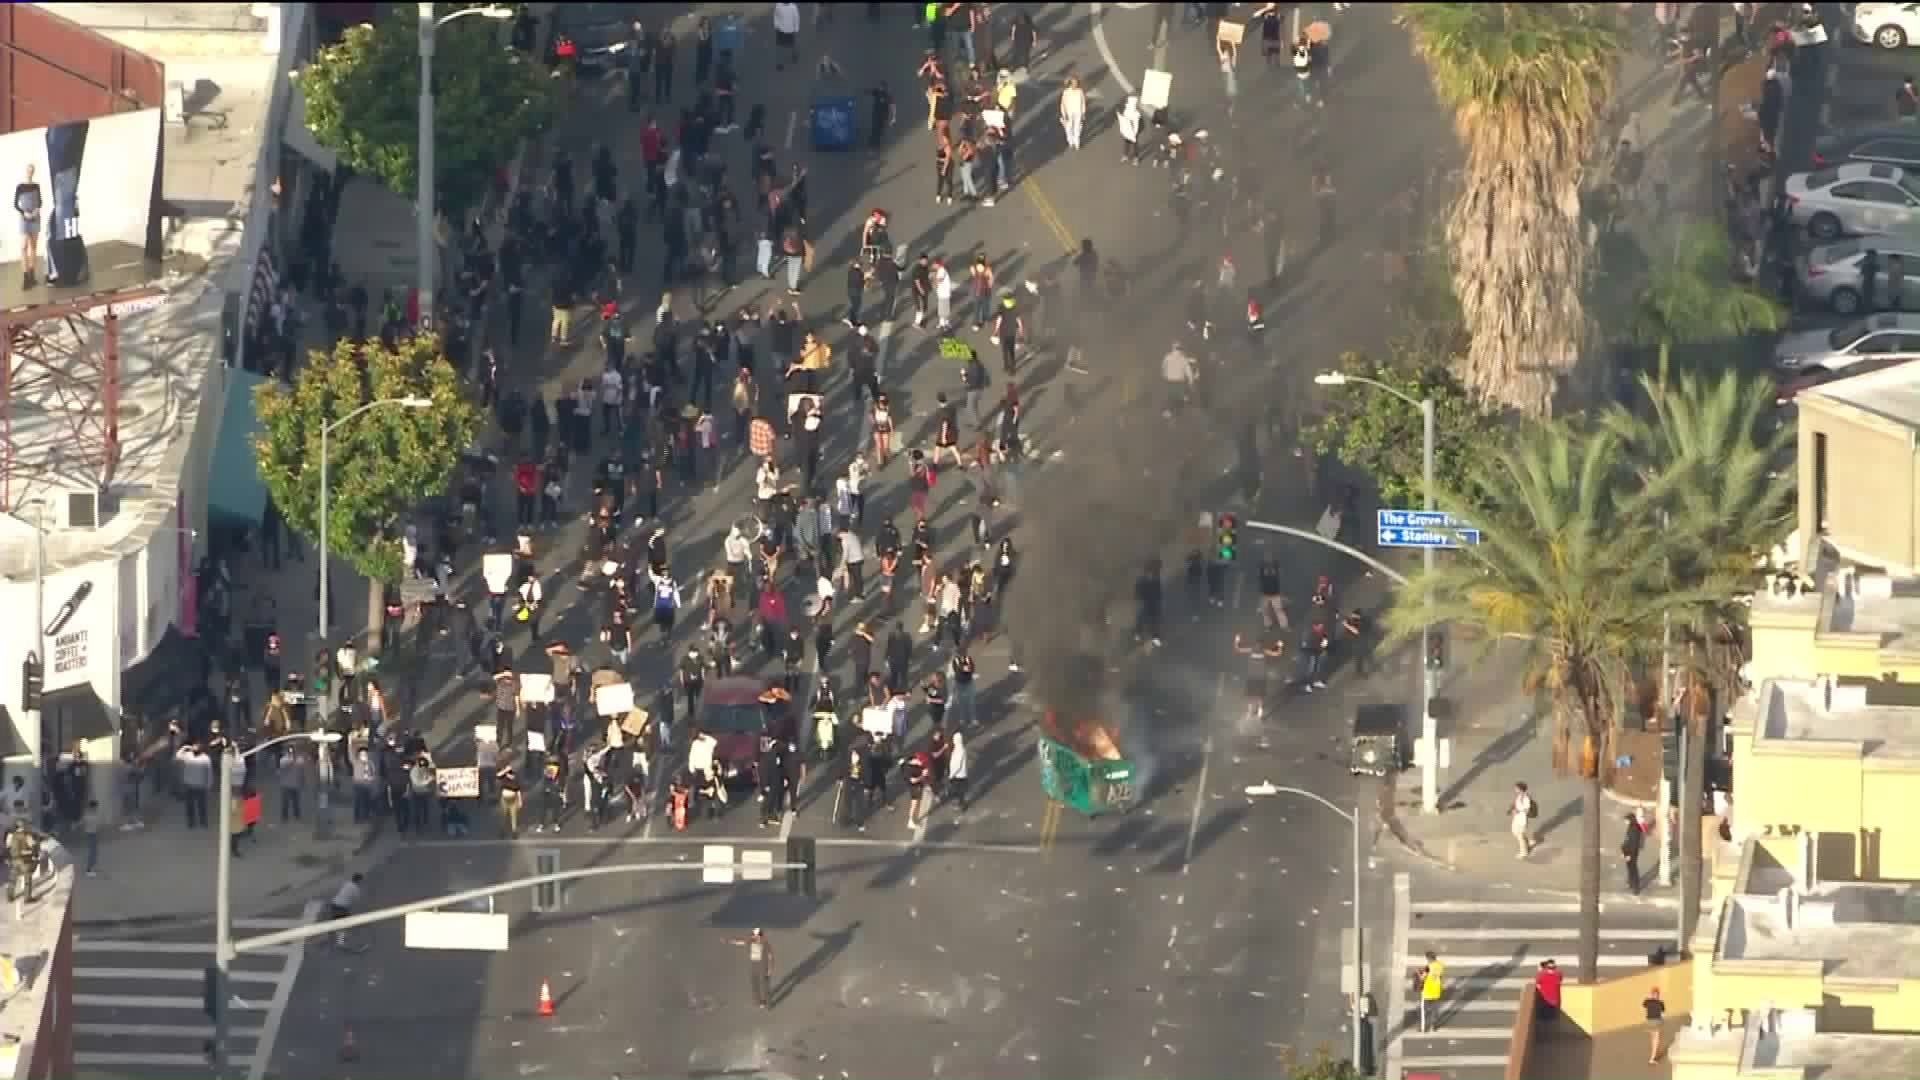 Protesters gather in Los Angeles' Fairfax District on May 30, 2020. (KTLA)